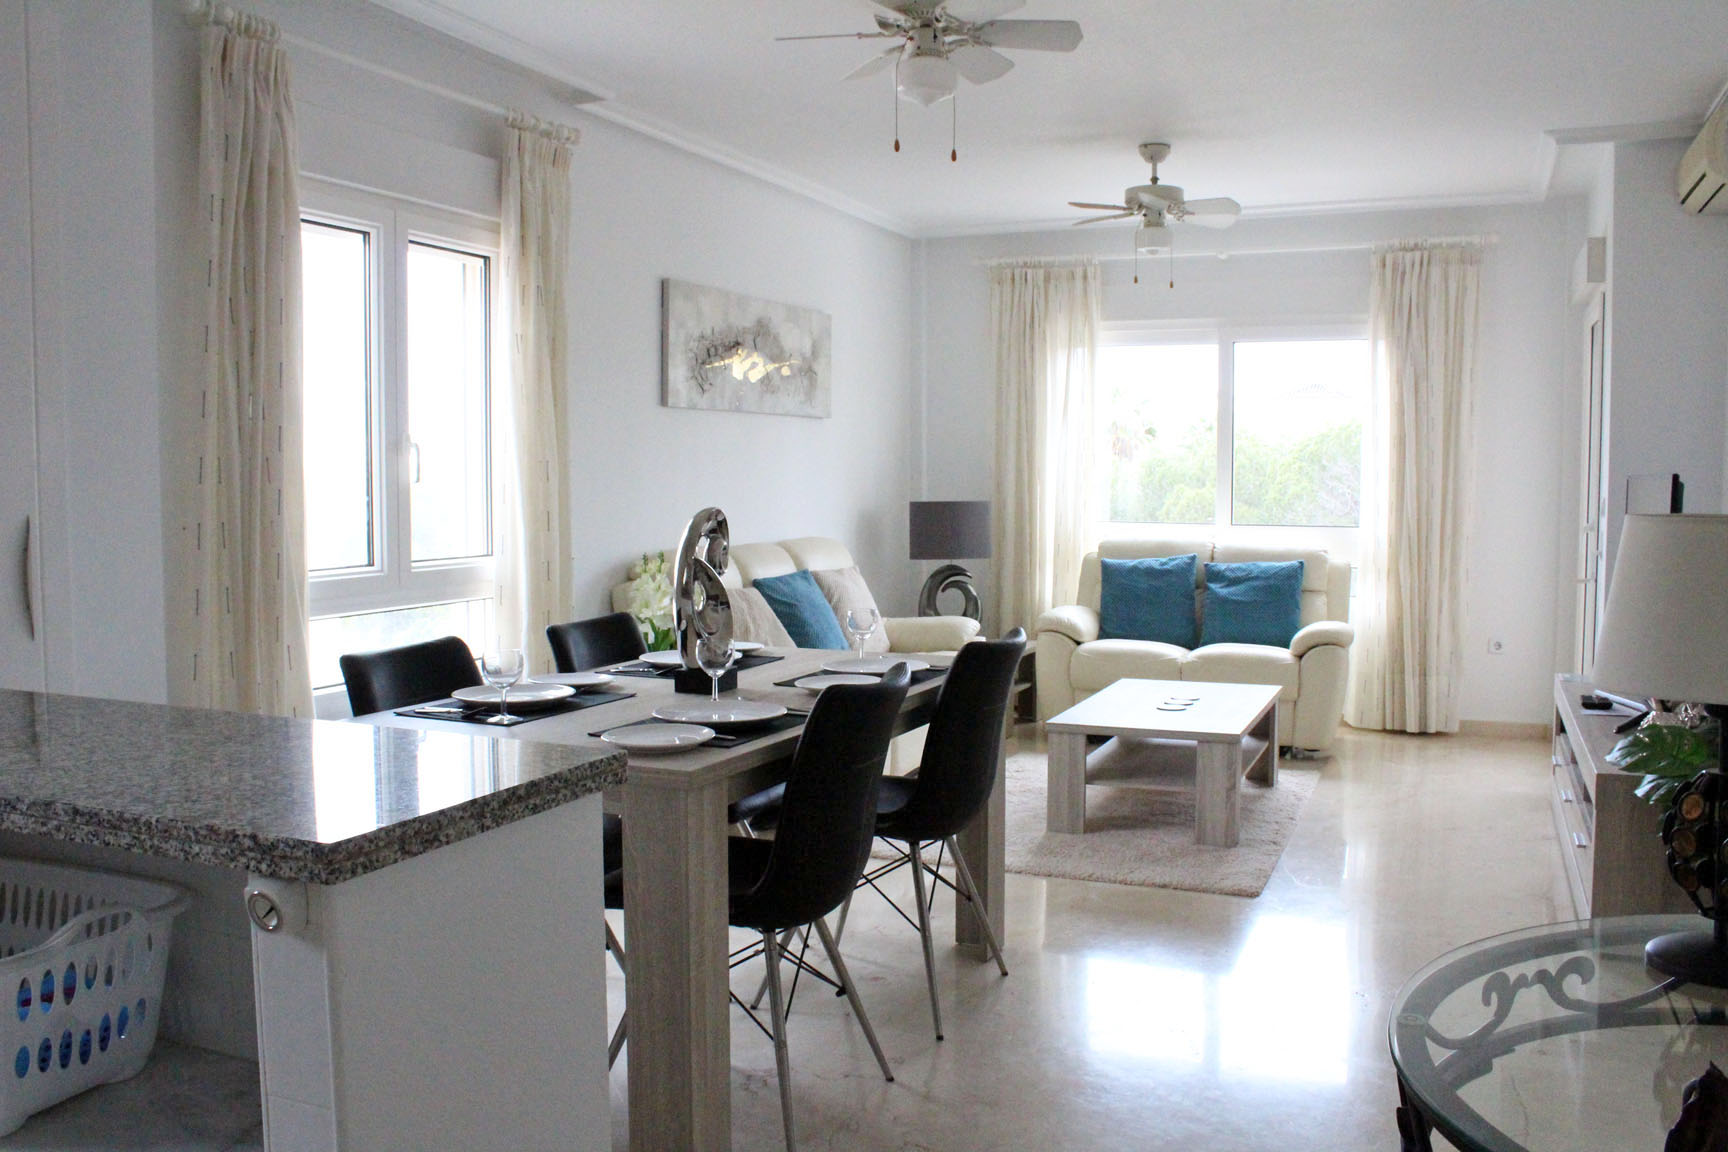 ITSH Property Large apartment perfect for holidays 3